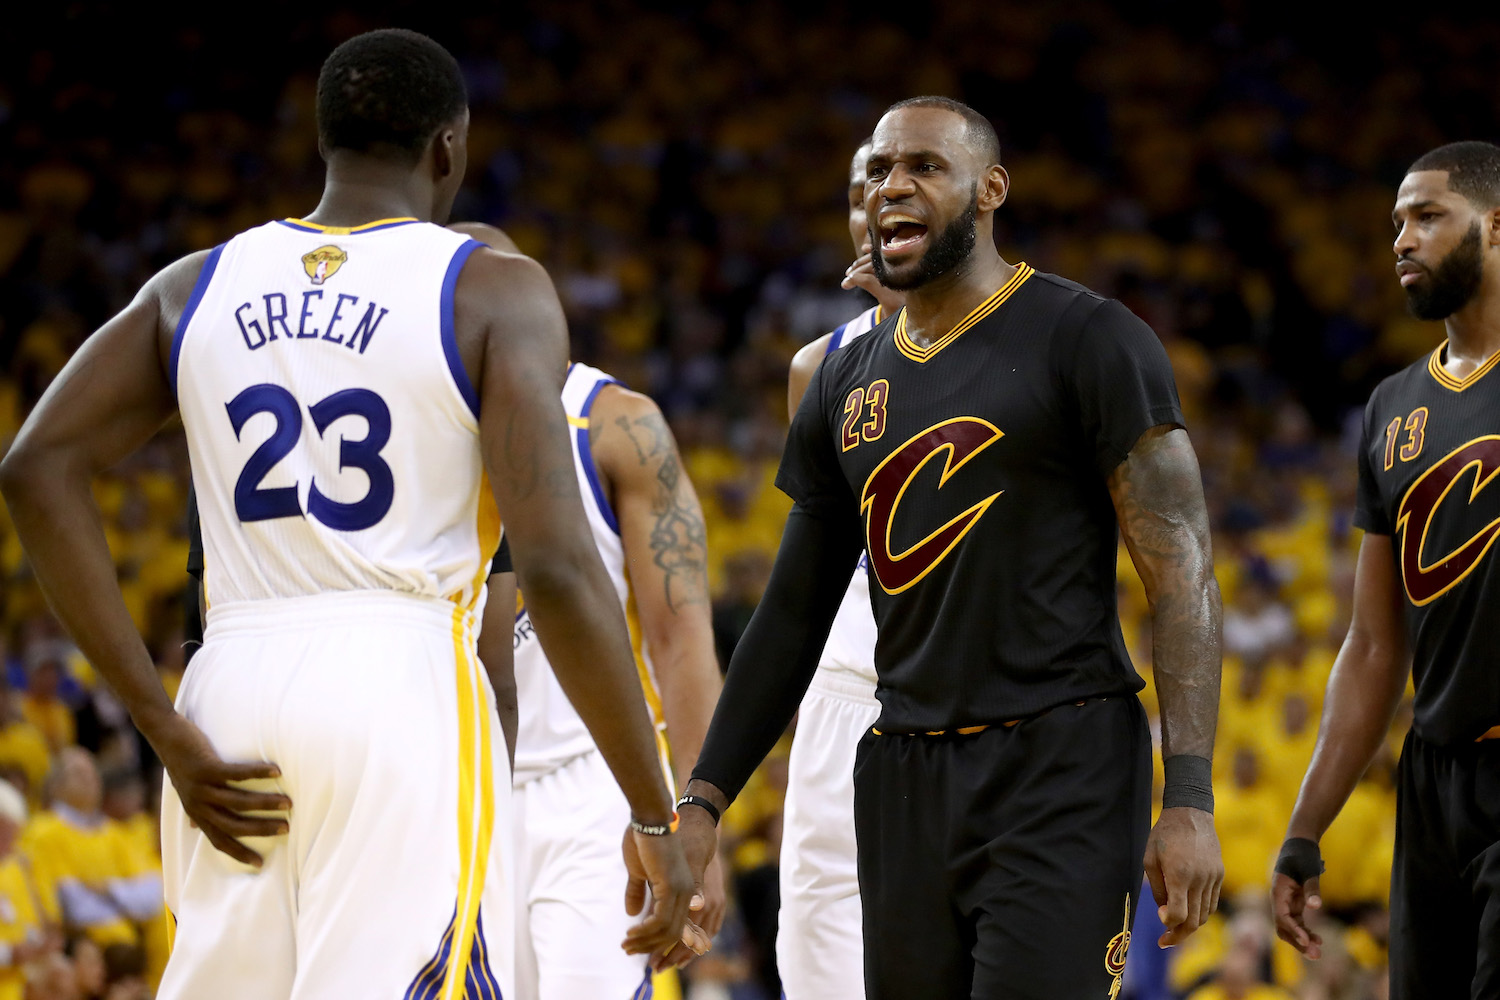 Draymond Green vs. LeBron James: Who will get the last word?